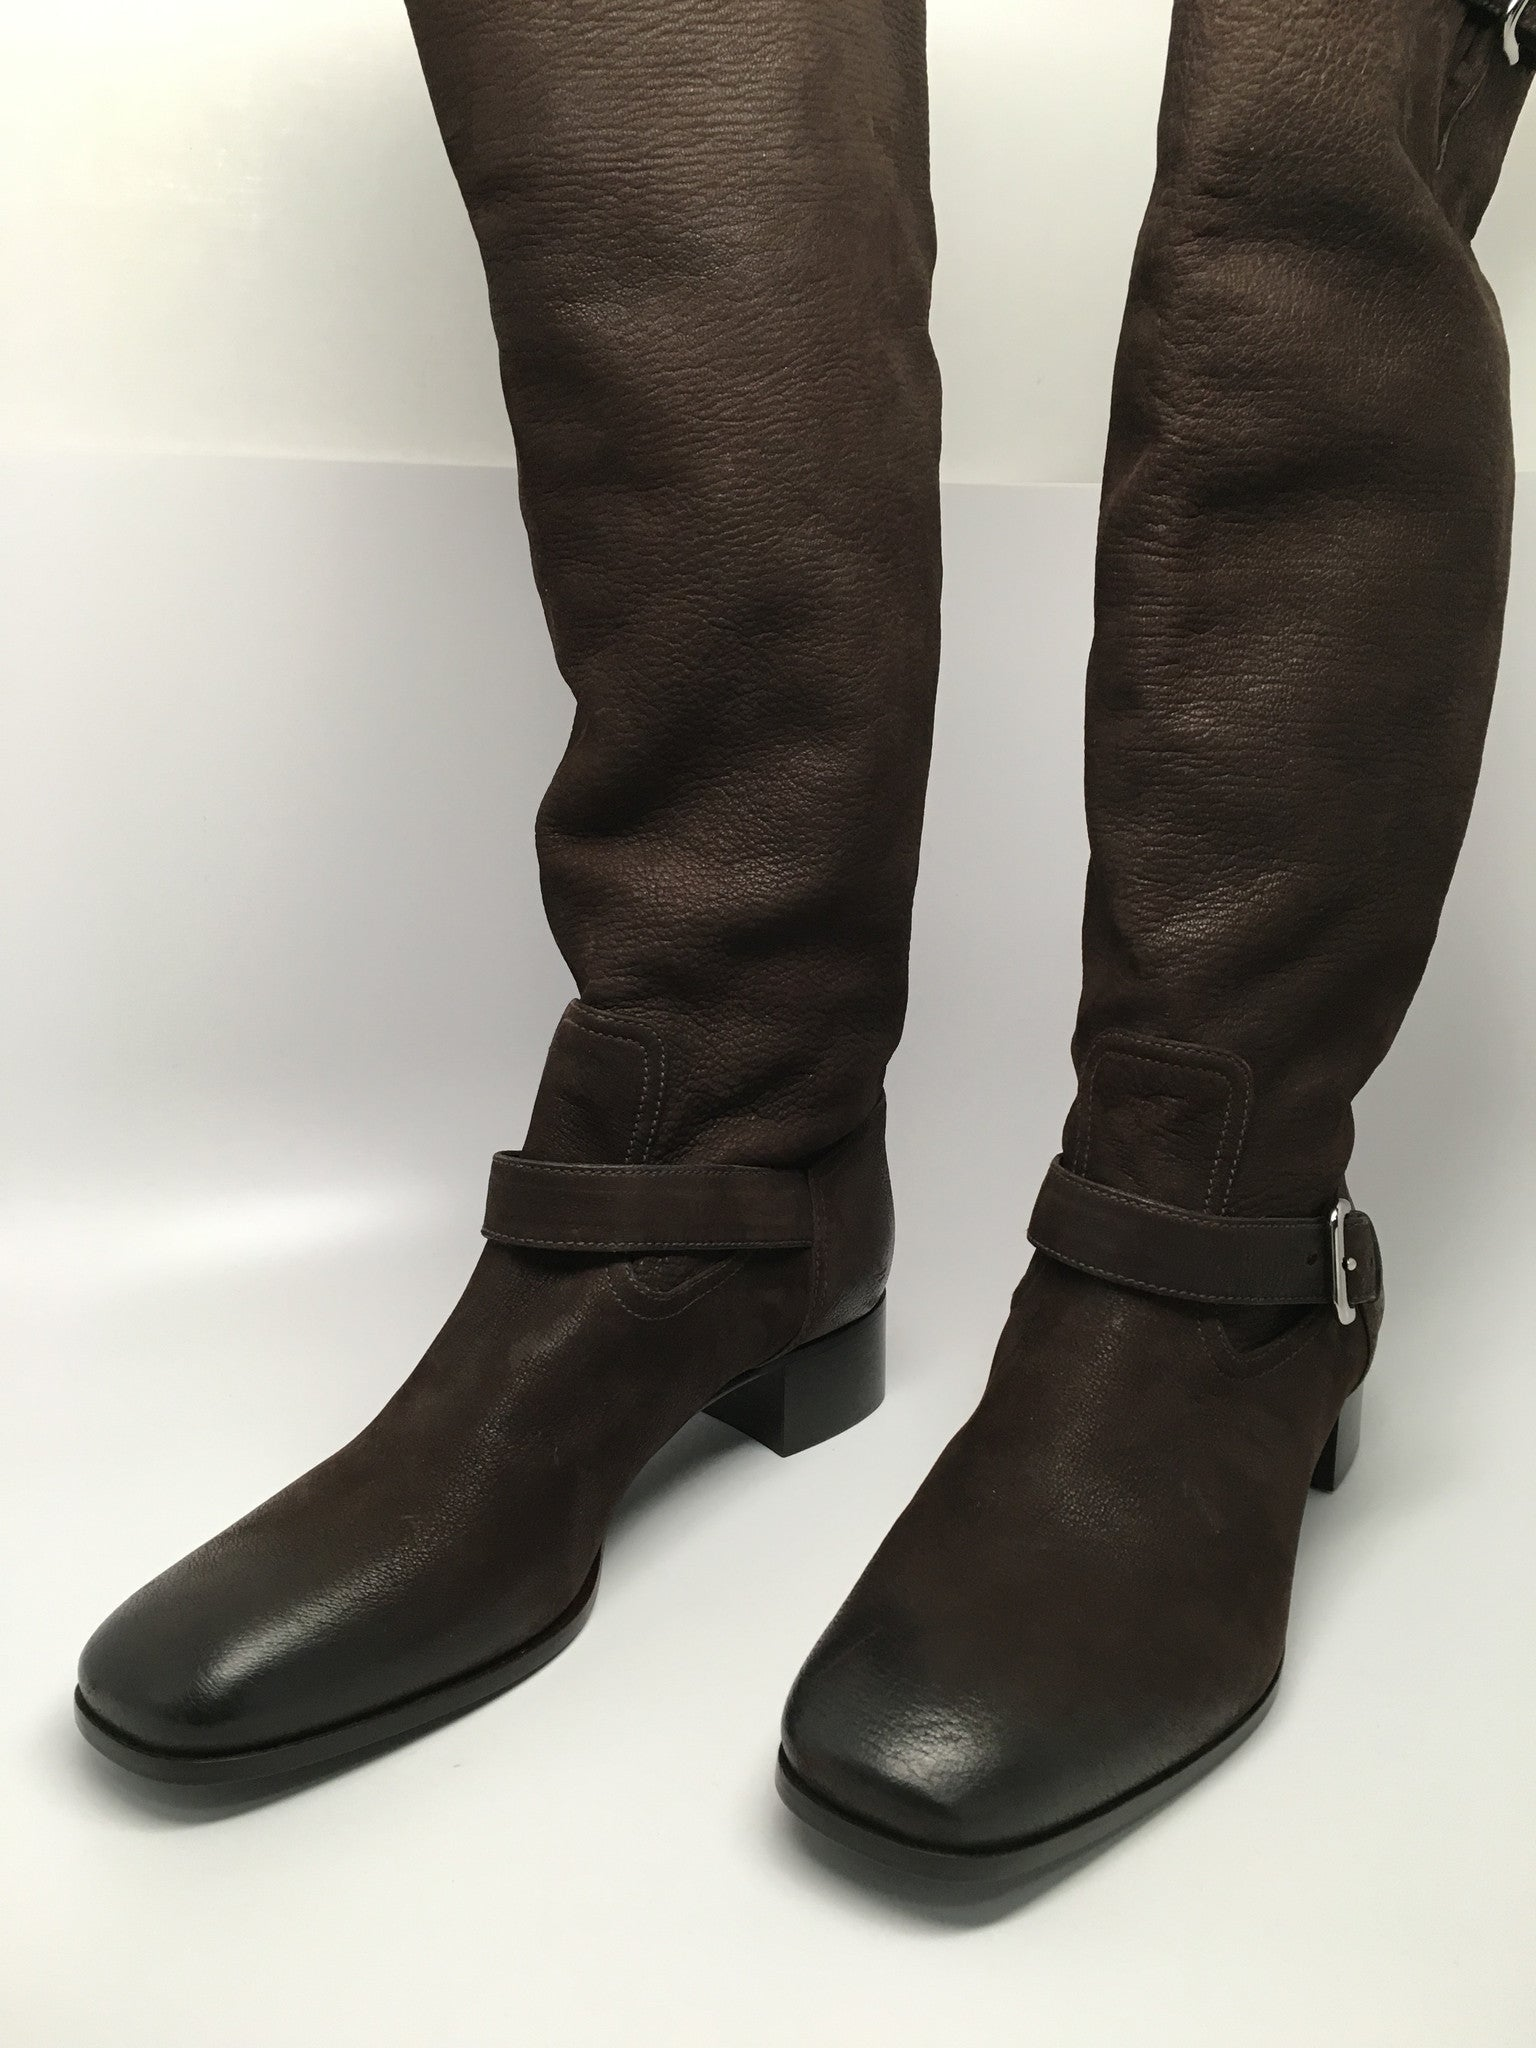 NEW PRADA CALZATURE DONNA CAPRA ANTIC 2 BROWN LEATHER BOOTS SIZE 39